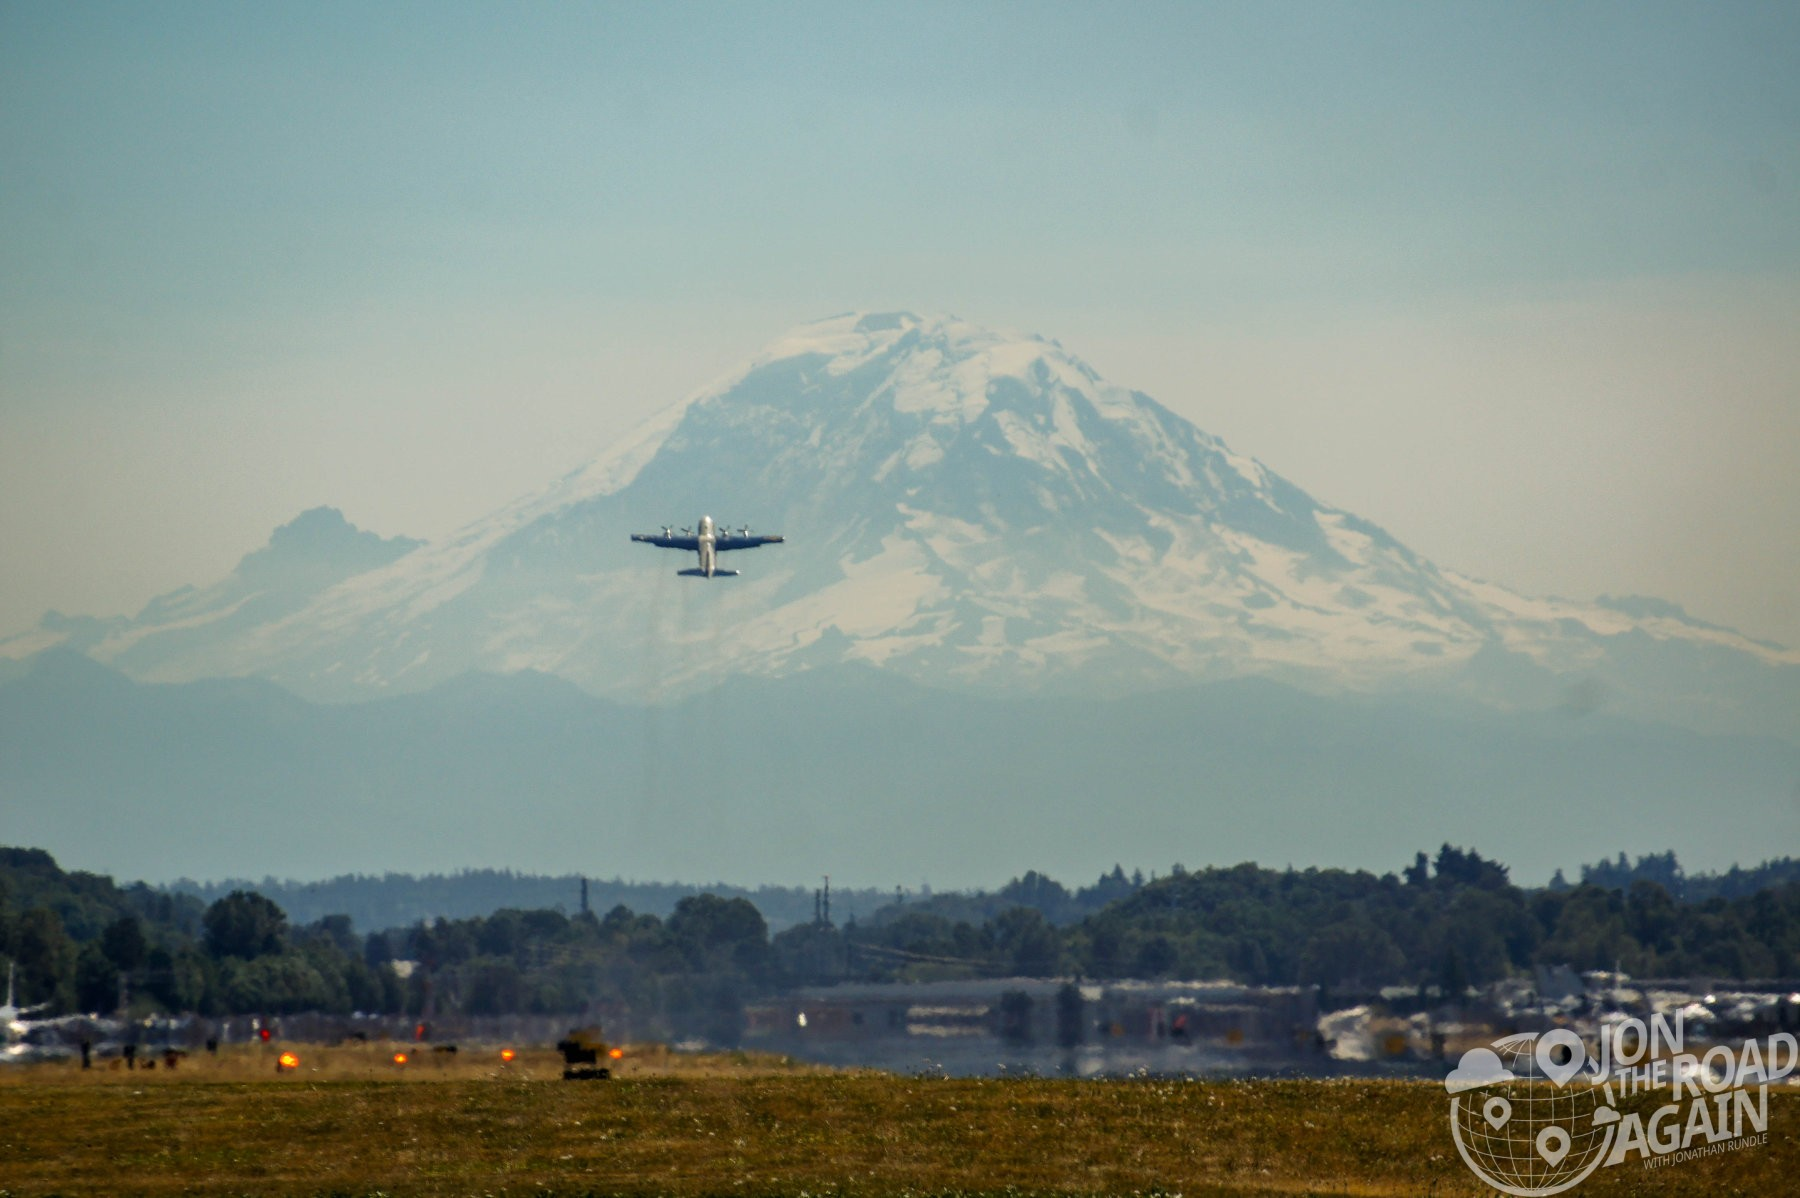 Fat Albert and Mount Rainier